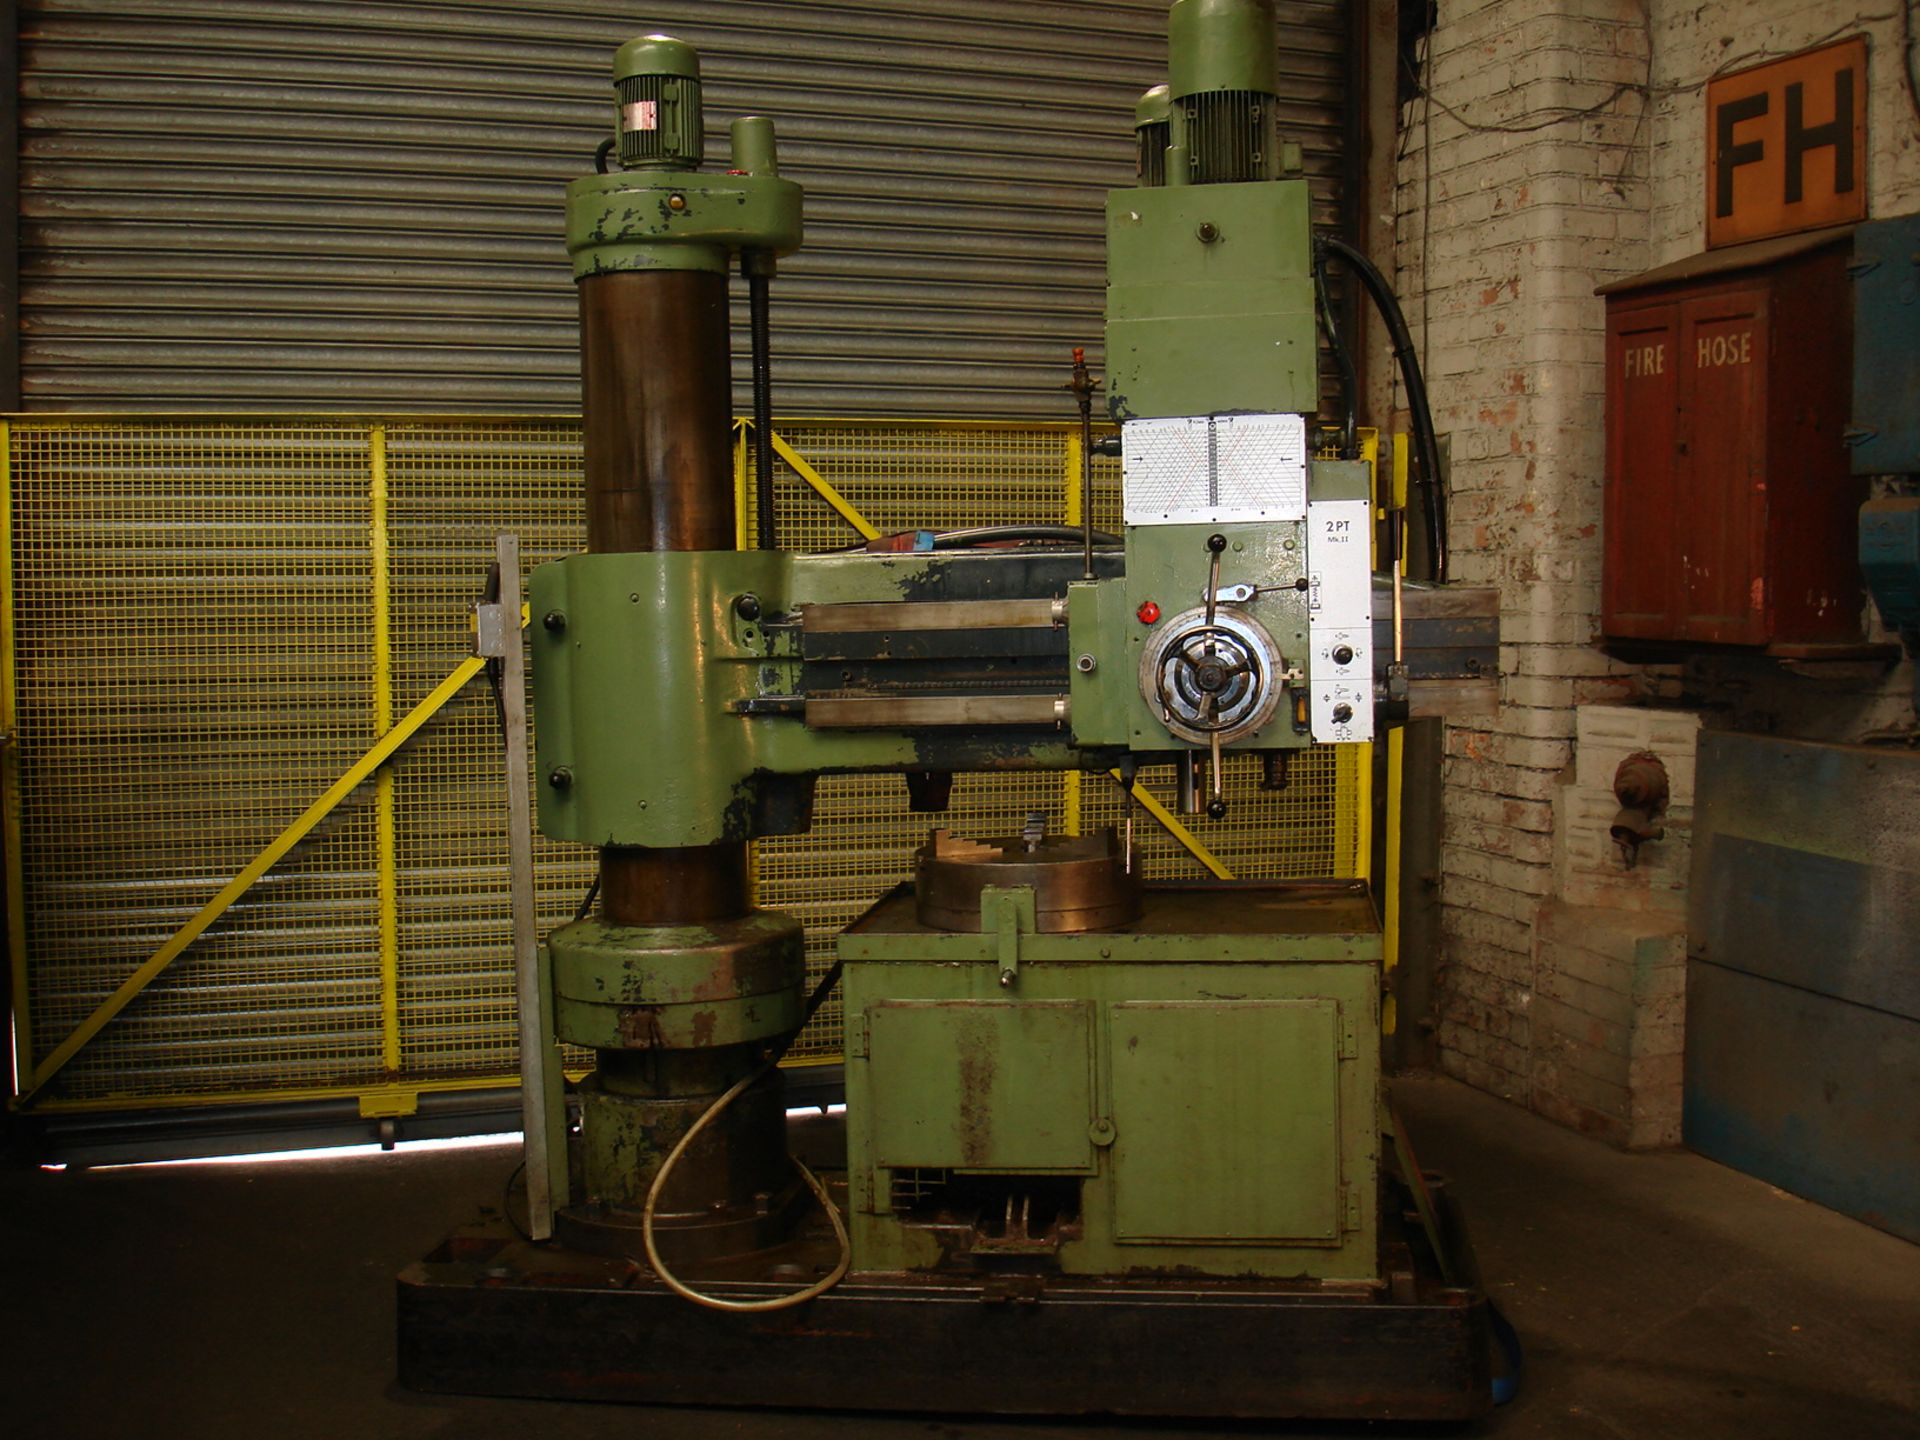 """Asquith Power thrust 4ft 6 Radial Arm Drill. Arm length 4ft 6""""."""